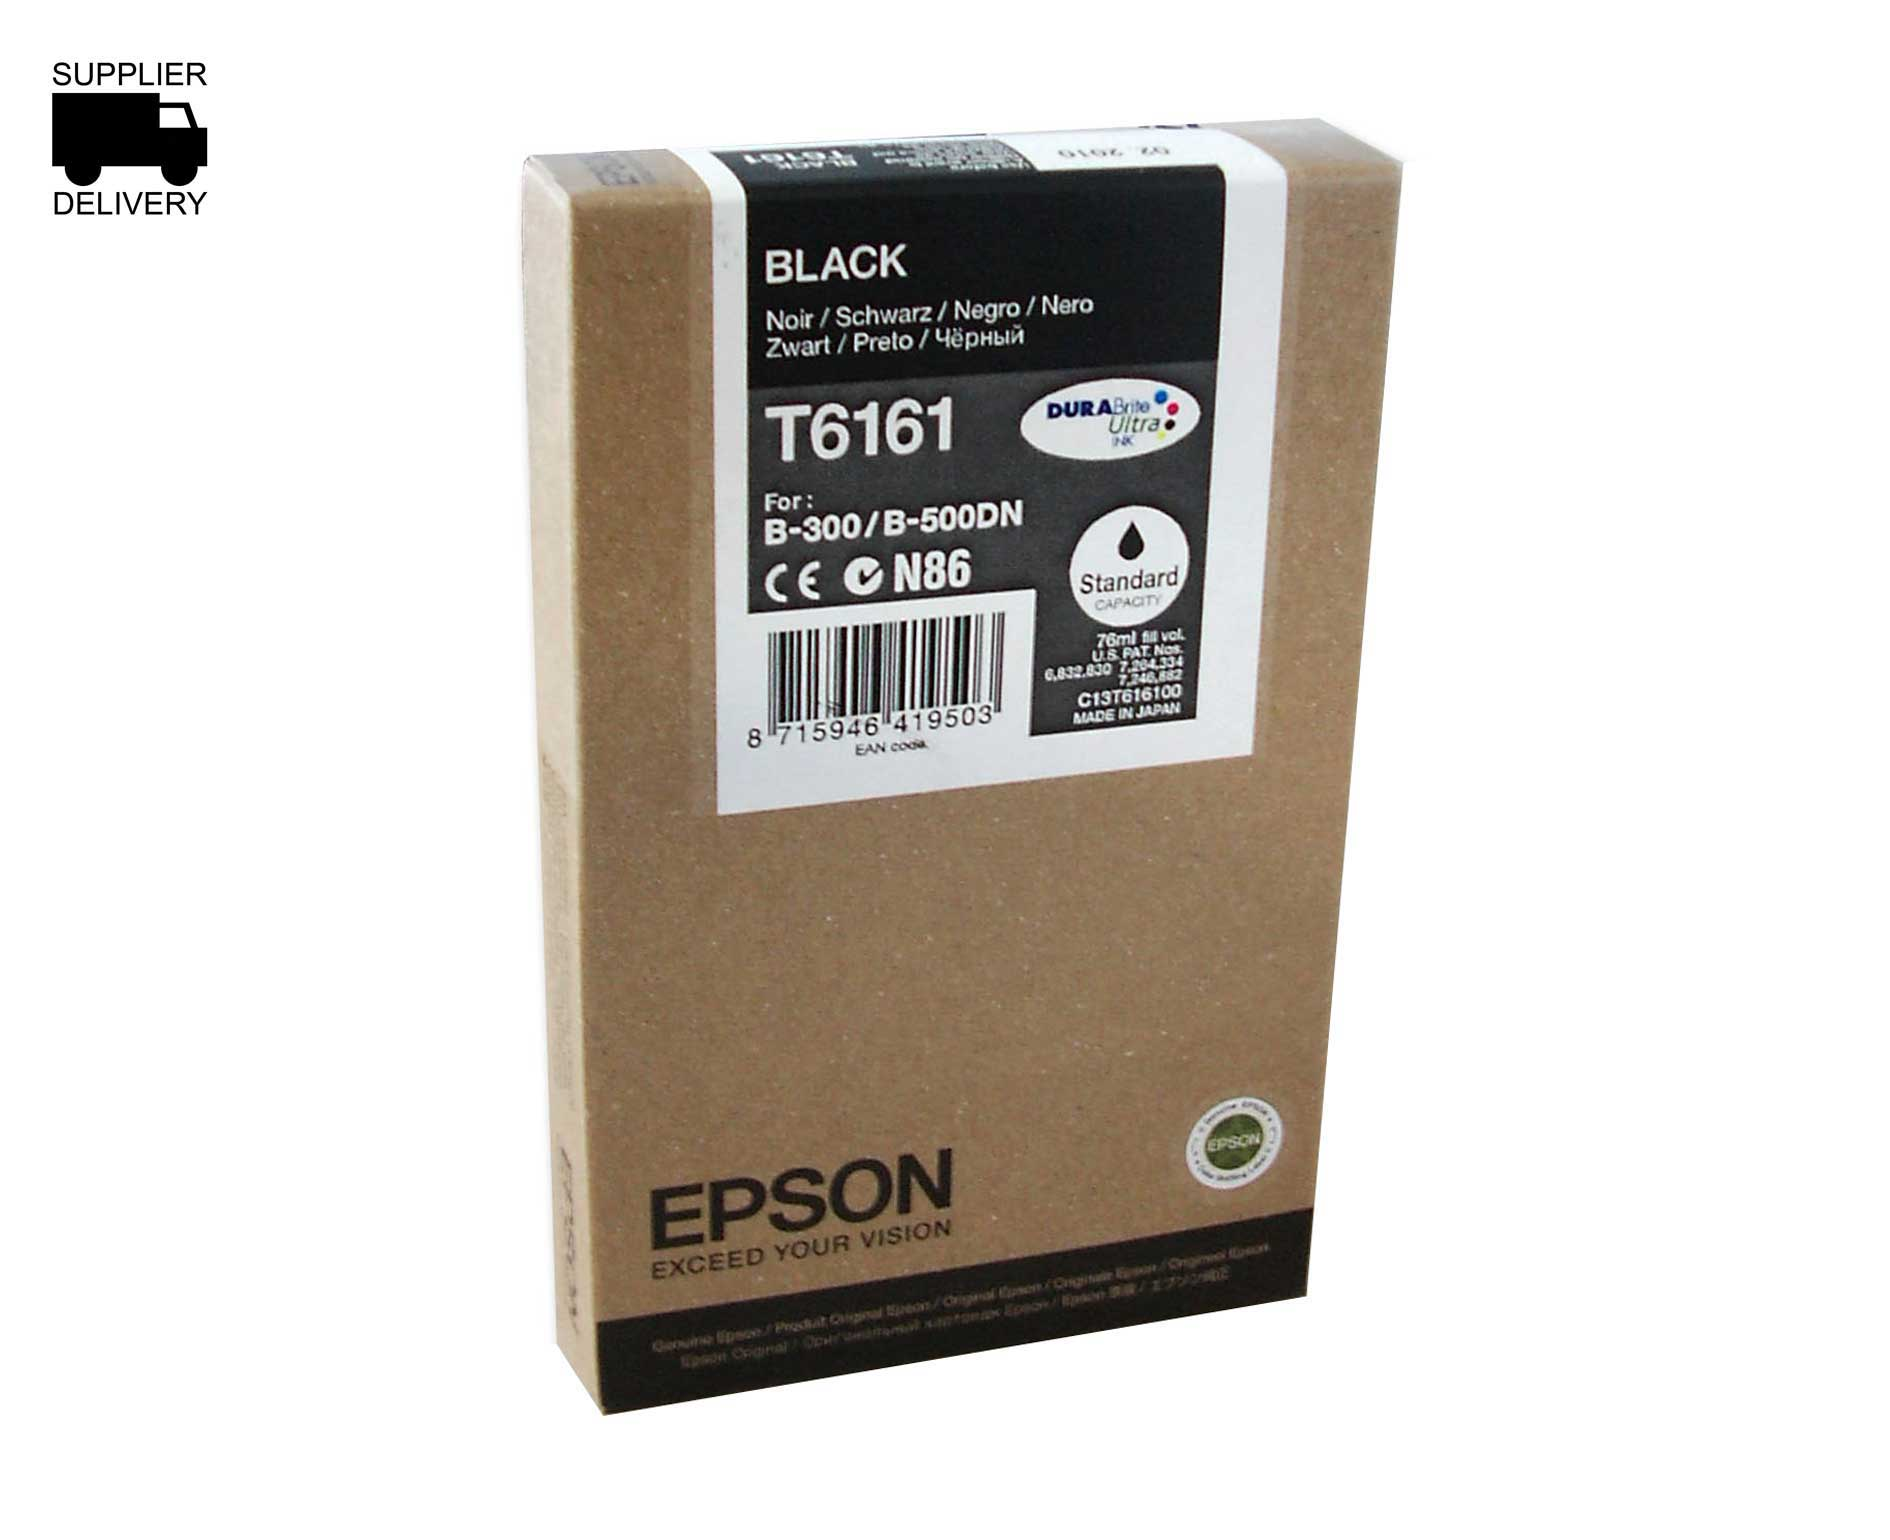 Black Epson T6161 Ink Cartridge (C13T616100) Printer Cartridge